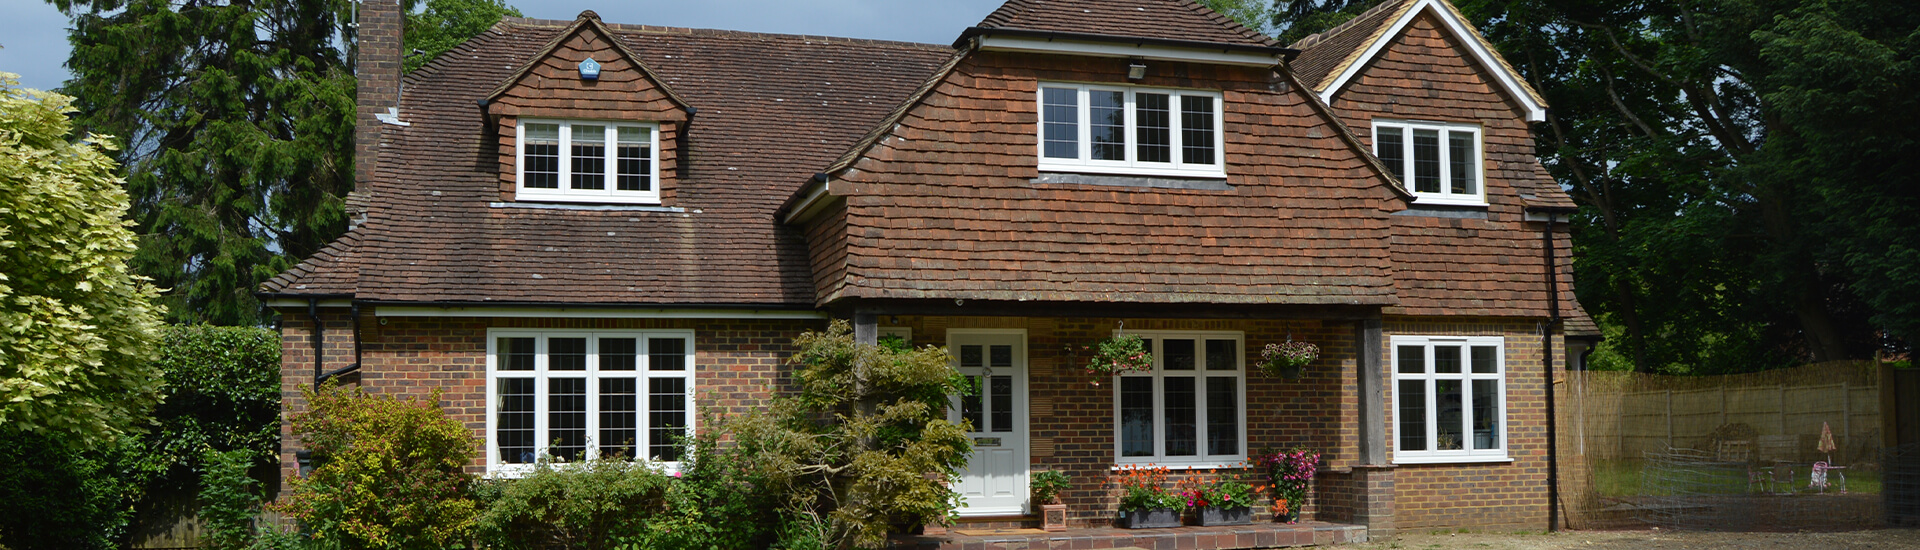 Guildford house price predictions 2019 - will they fall? | P